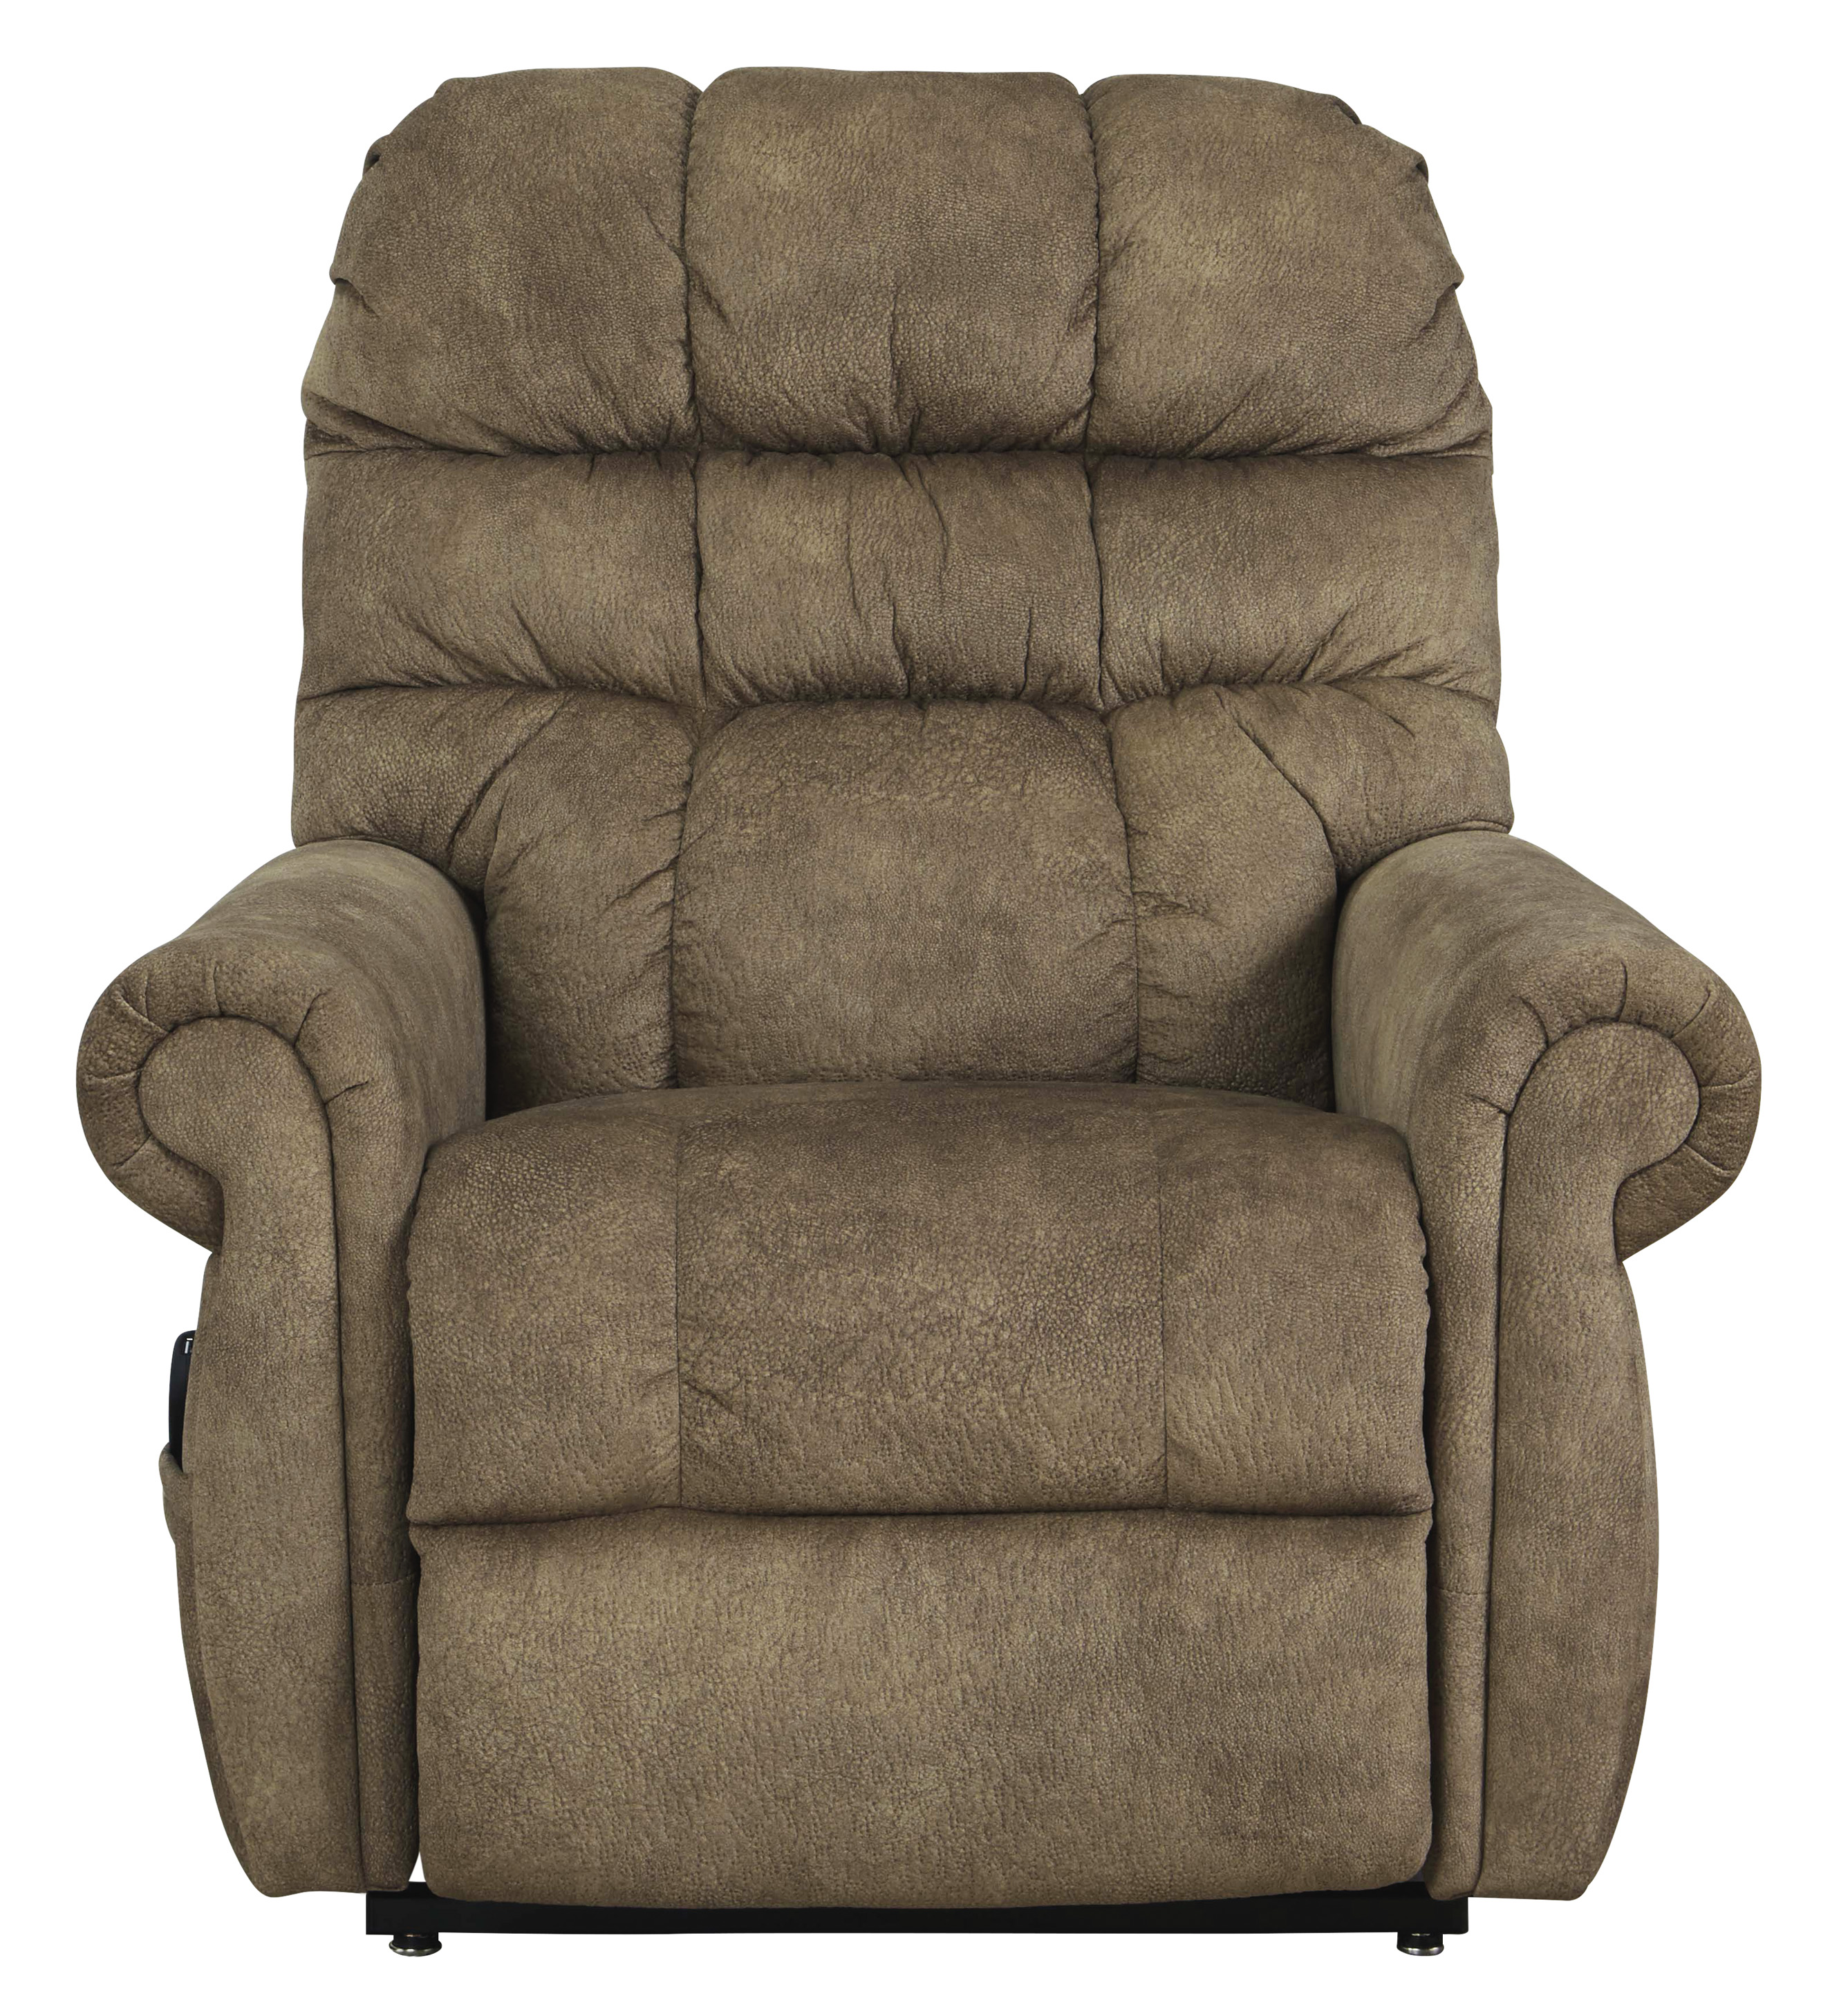 Mopton Power Lift Recliner by Signature Design by Ashley at Gill Brothers Furniture